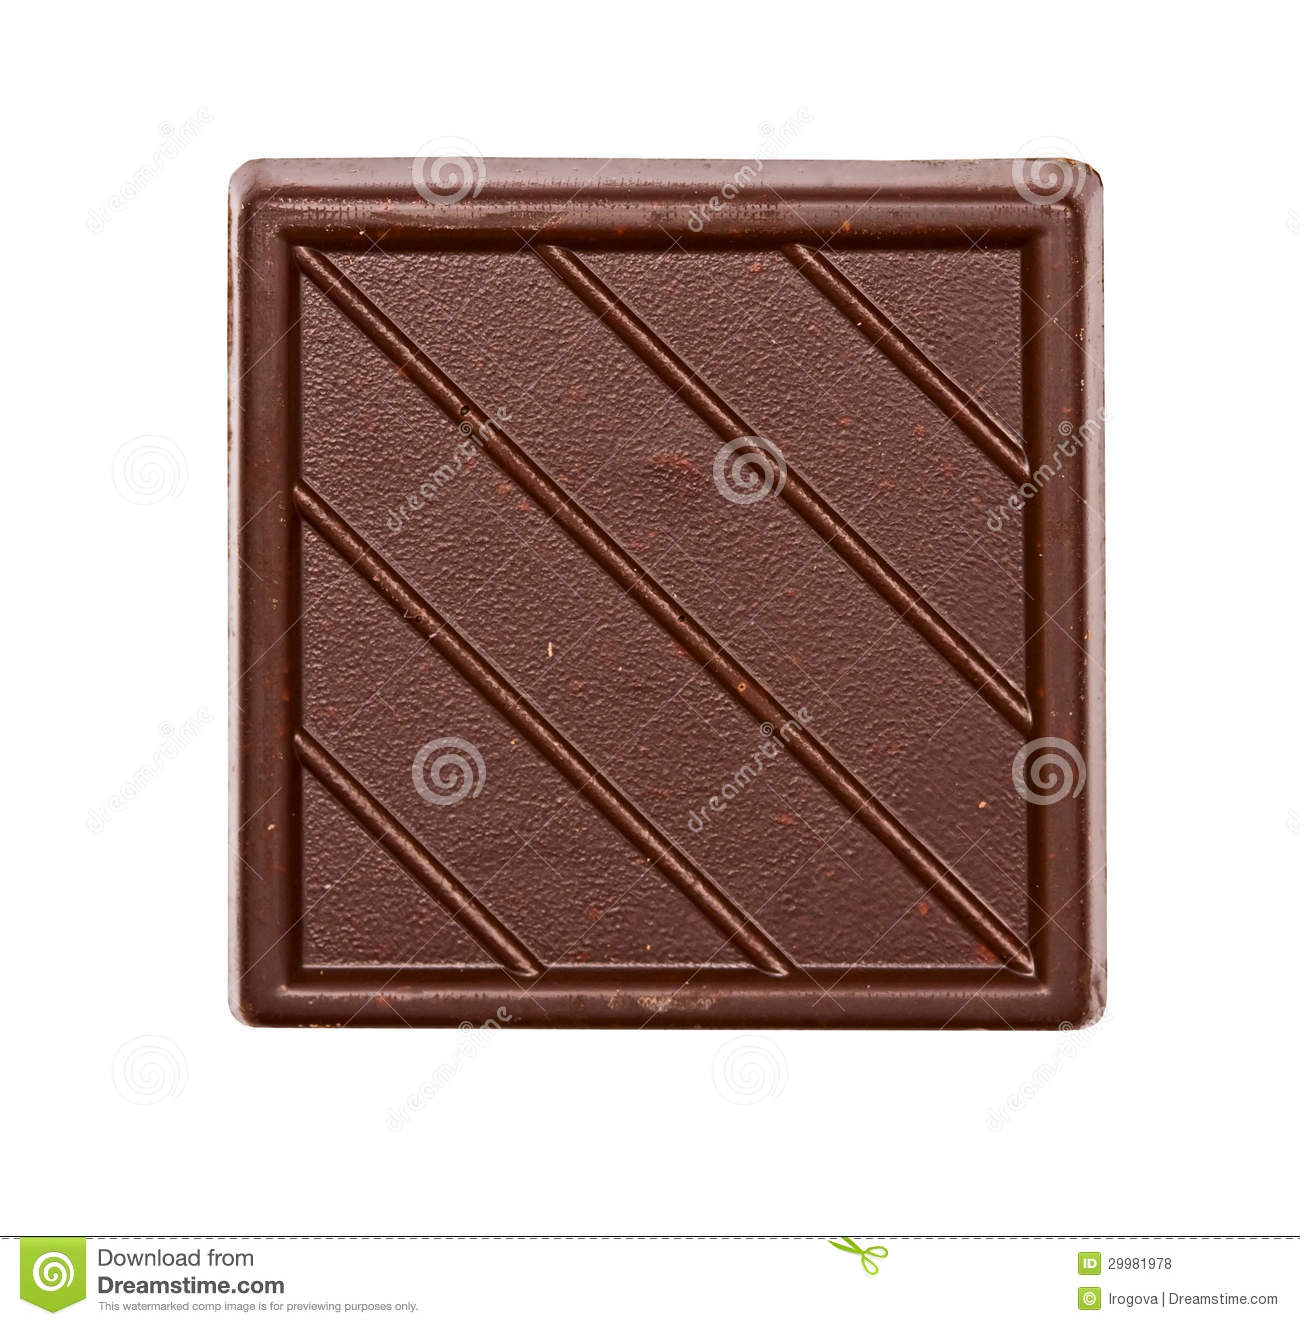 Square Chocolate Royalty Free Stock Photos - Image: 29981978